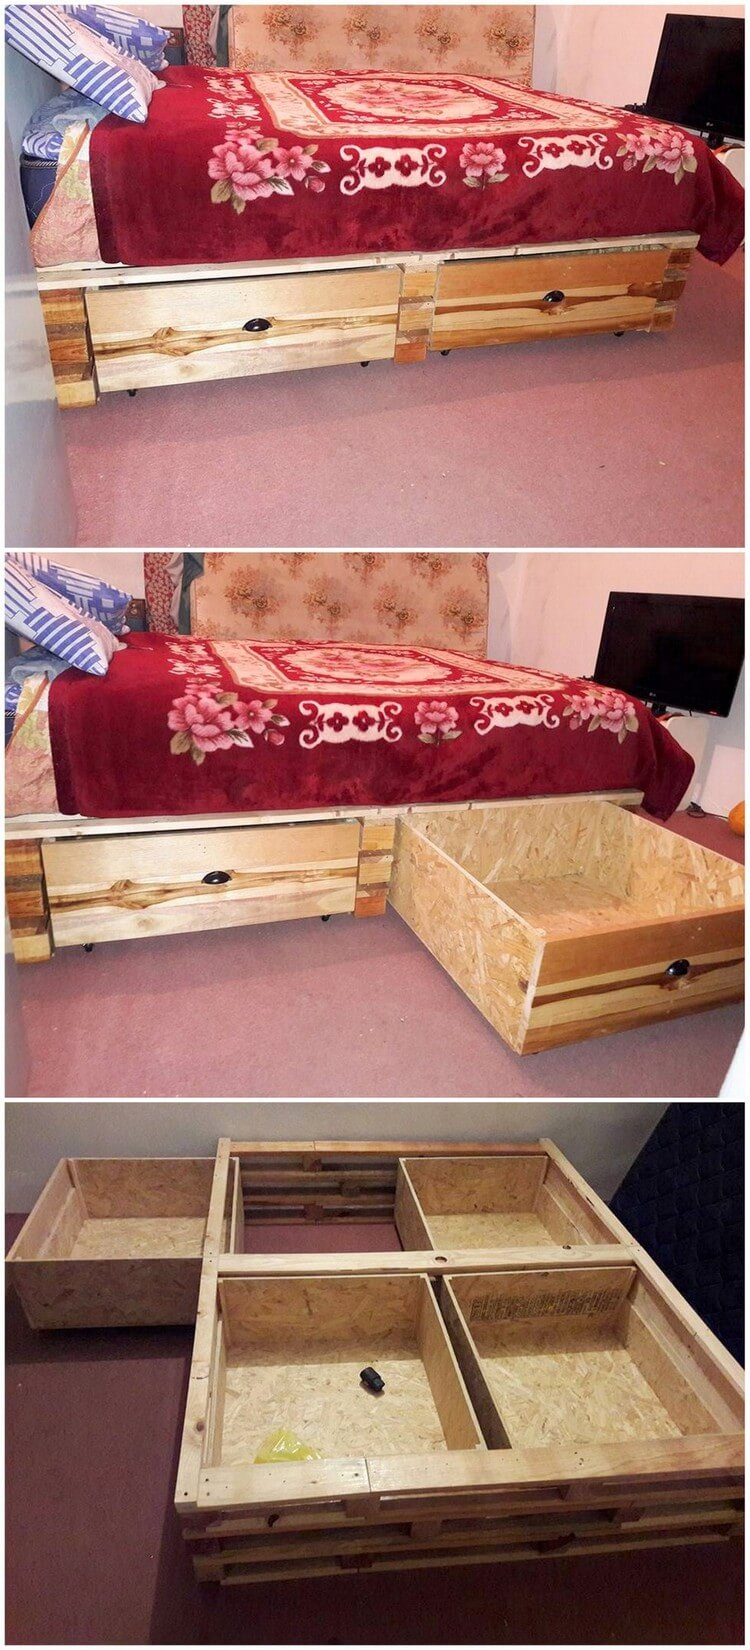 Interesting diy ideas with recycled wood pallets pallet for How to make a pallet bed with drawers